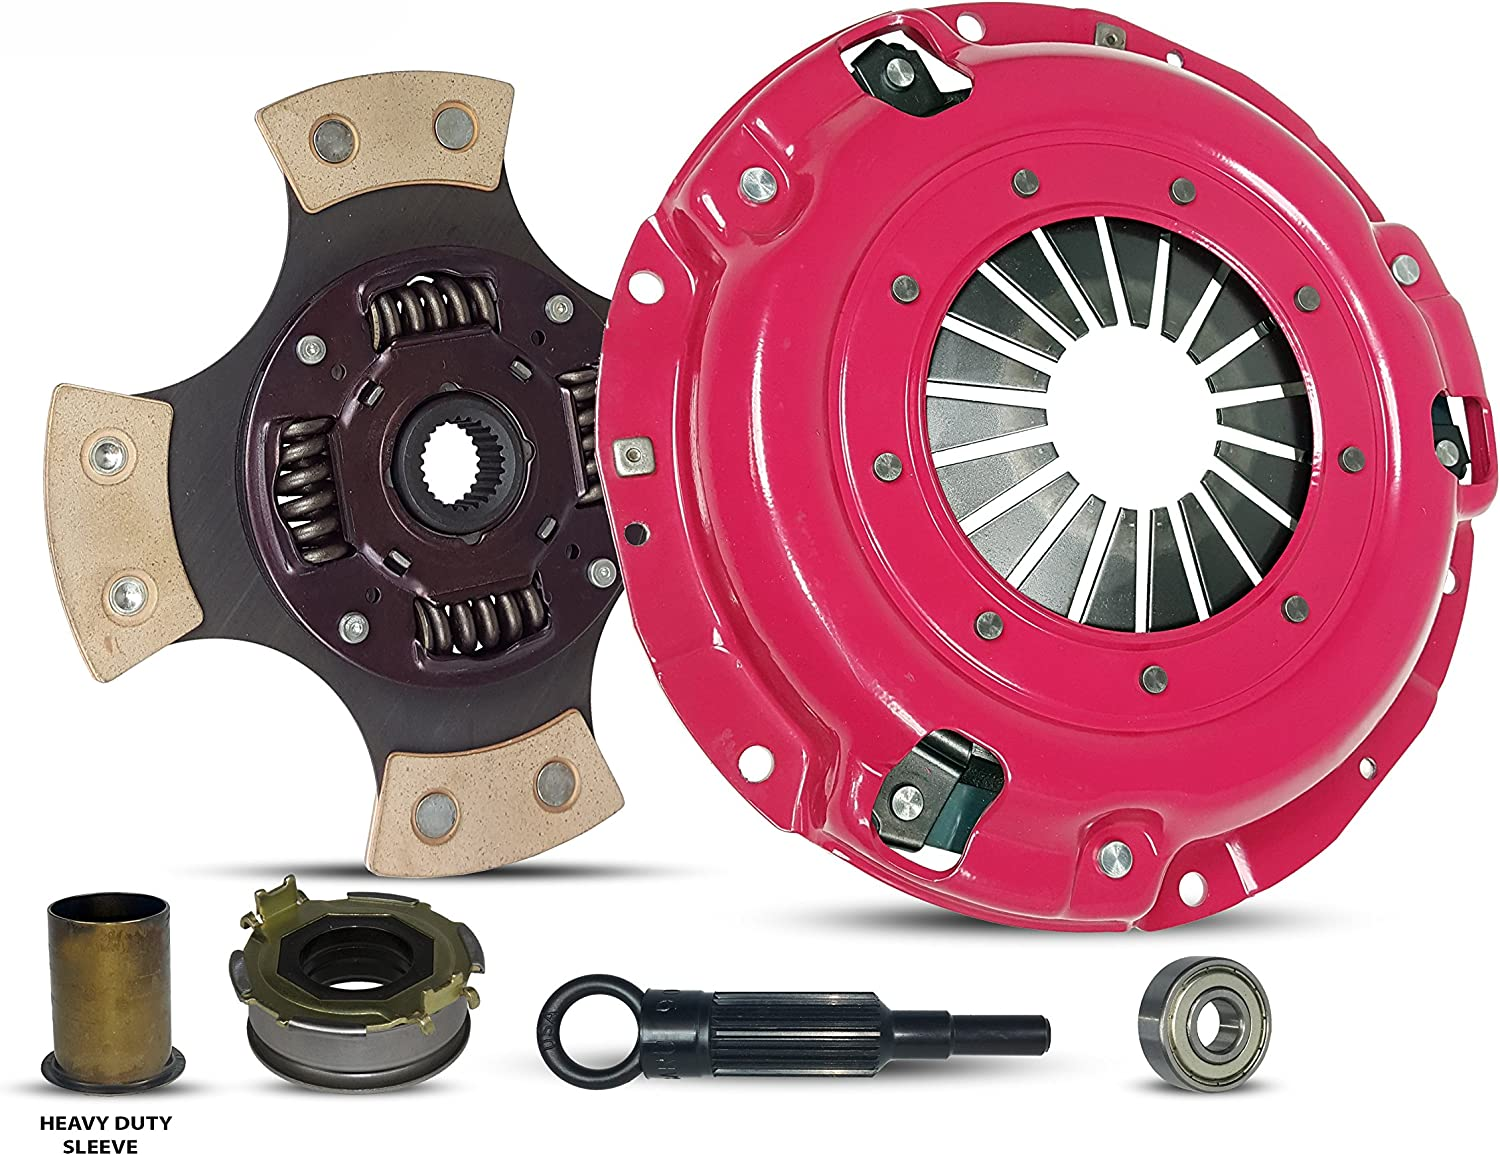 Charlotte Mall Clutch Kit compatible with Impreza Legacy 2.2L Free shipping Outback 4Cyl 1.8L